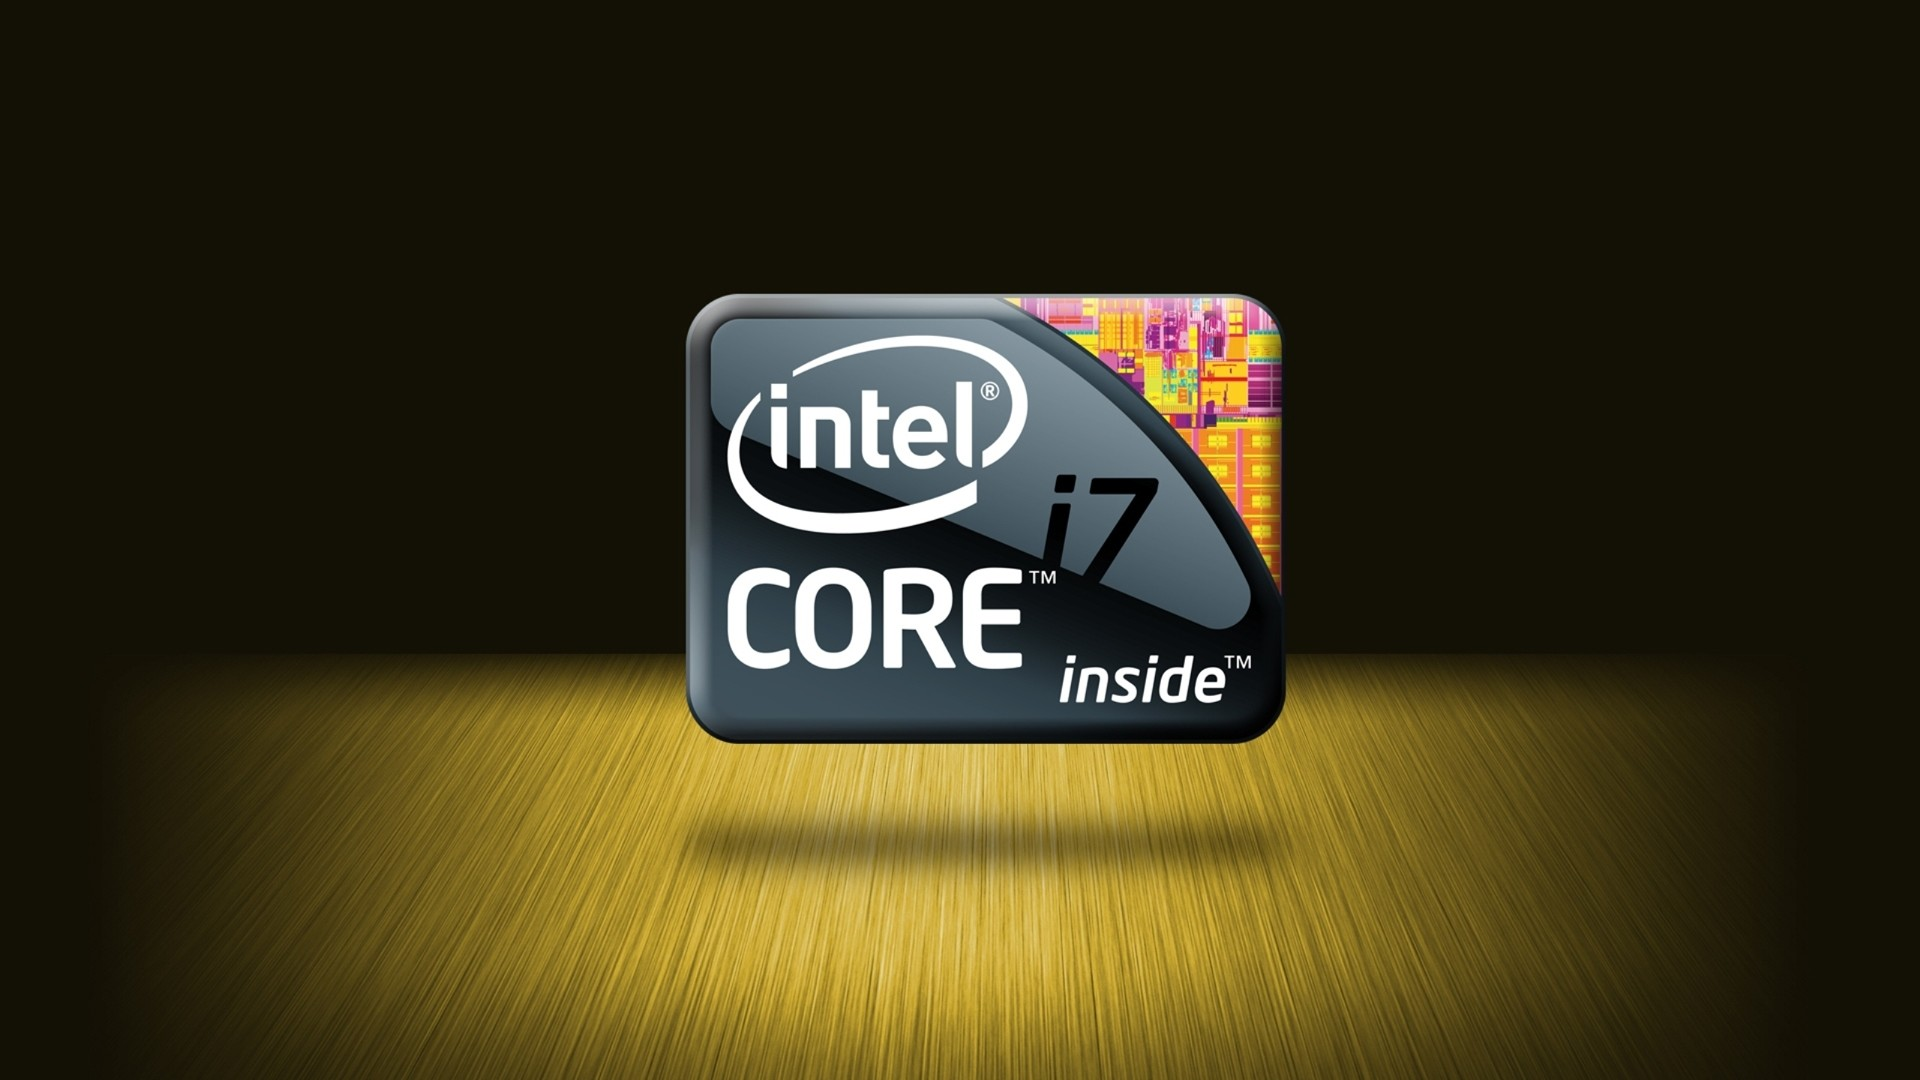 Intel Core i7 – High Definition Wallpapers – HD wallpapers